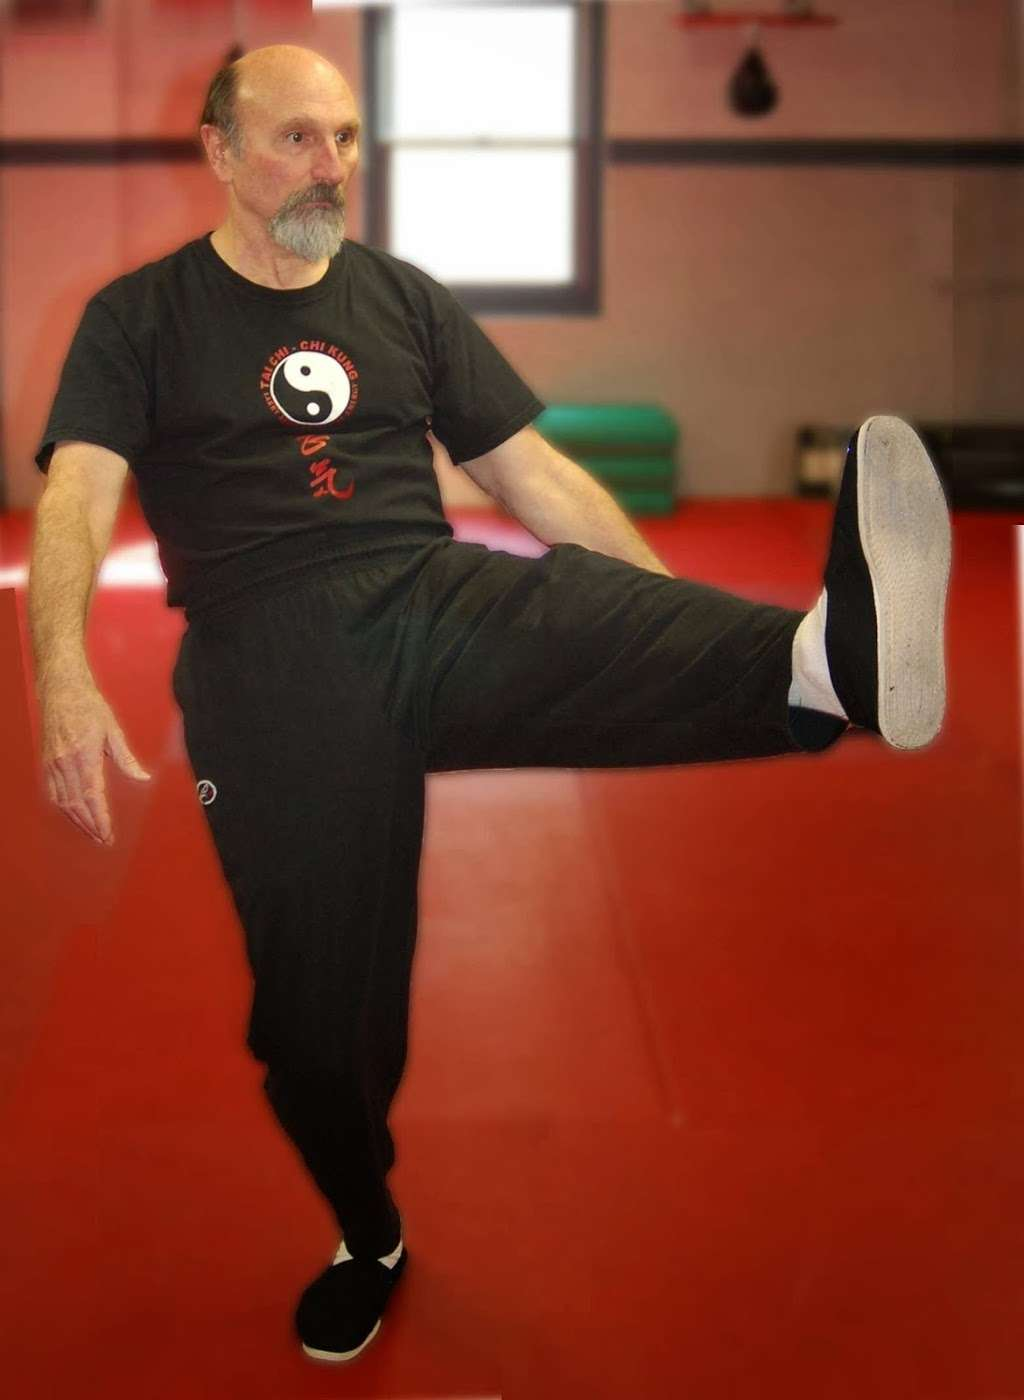 Tai Chi School of Eternal Energy - gym  | Photo 3 of 3 | Address: 79 Montgomery Ave, Scarsdale, NY 10583, USA | Phone: (914) 588-0763